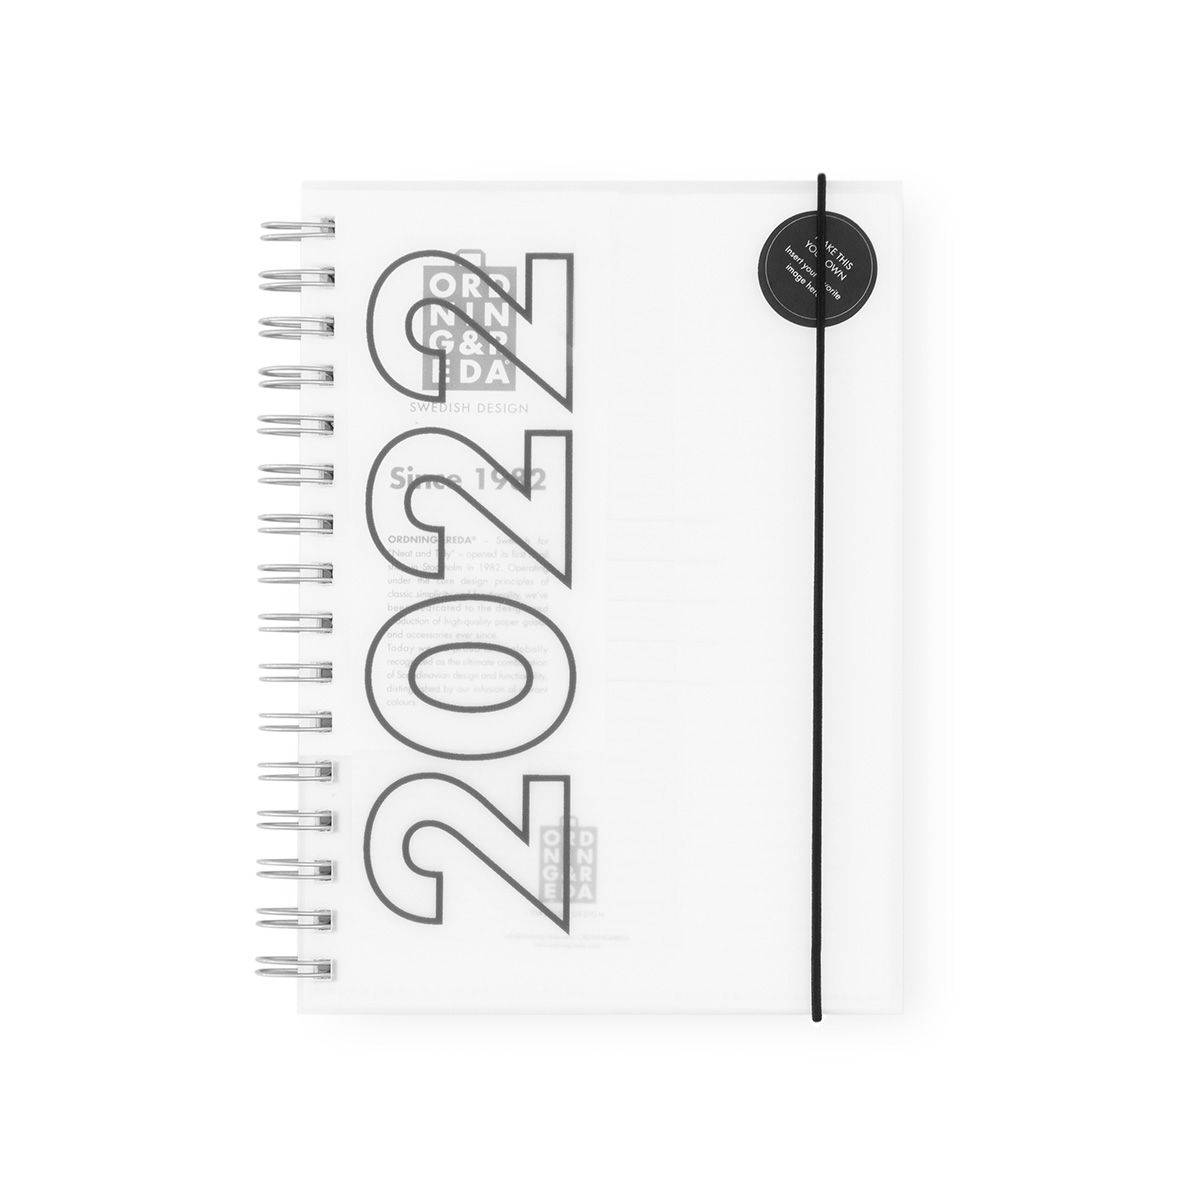 Diary 2022 OWN COVER Ordning and Reda